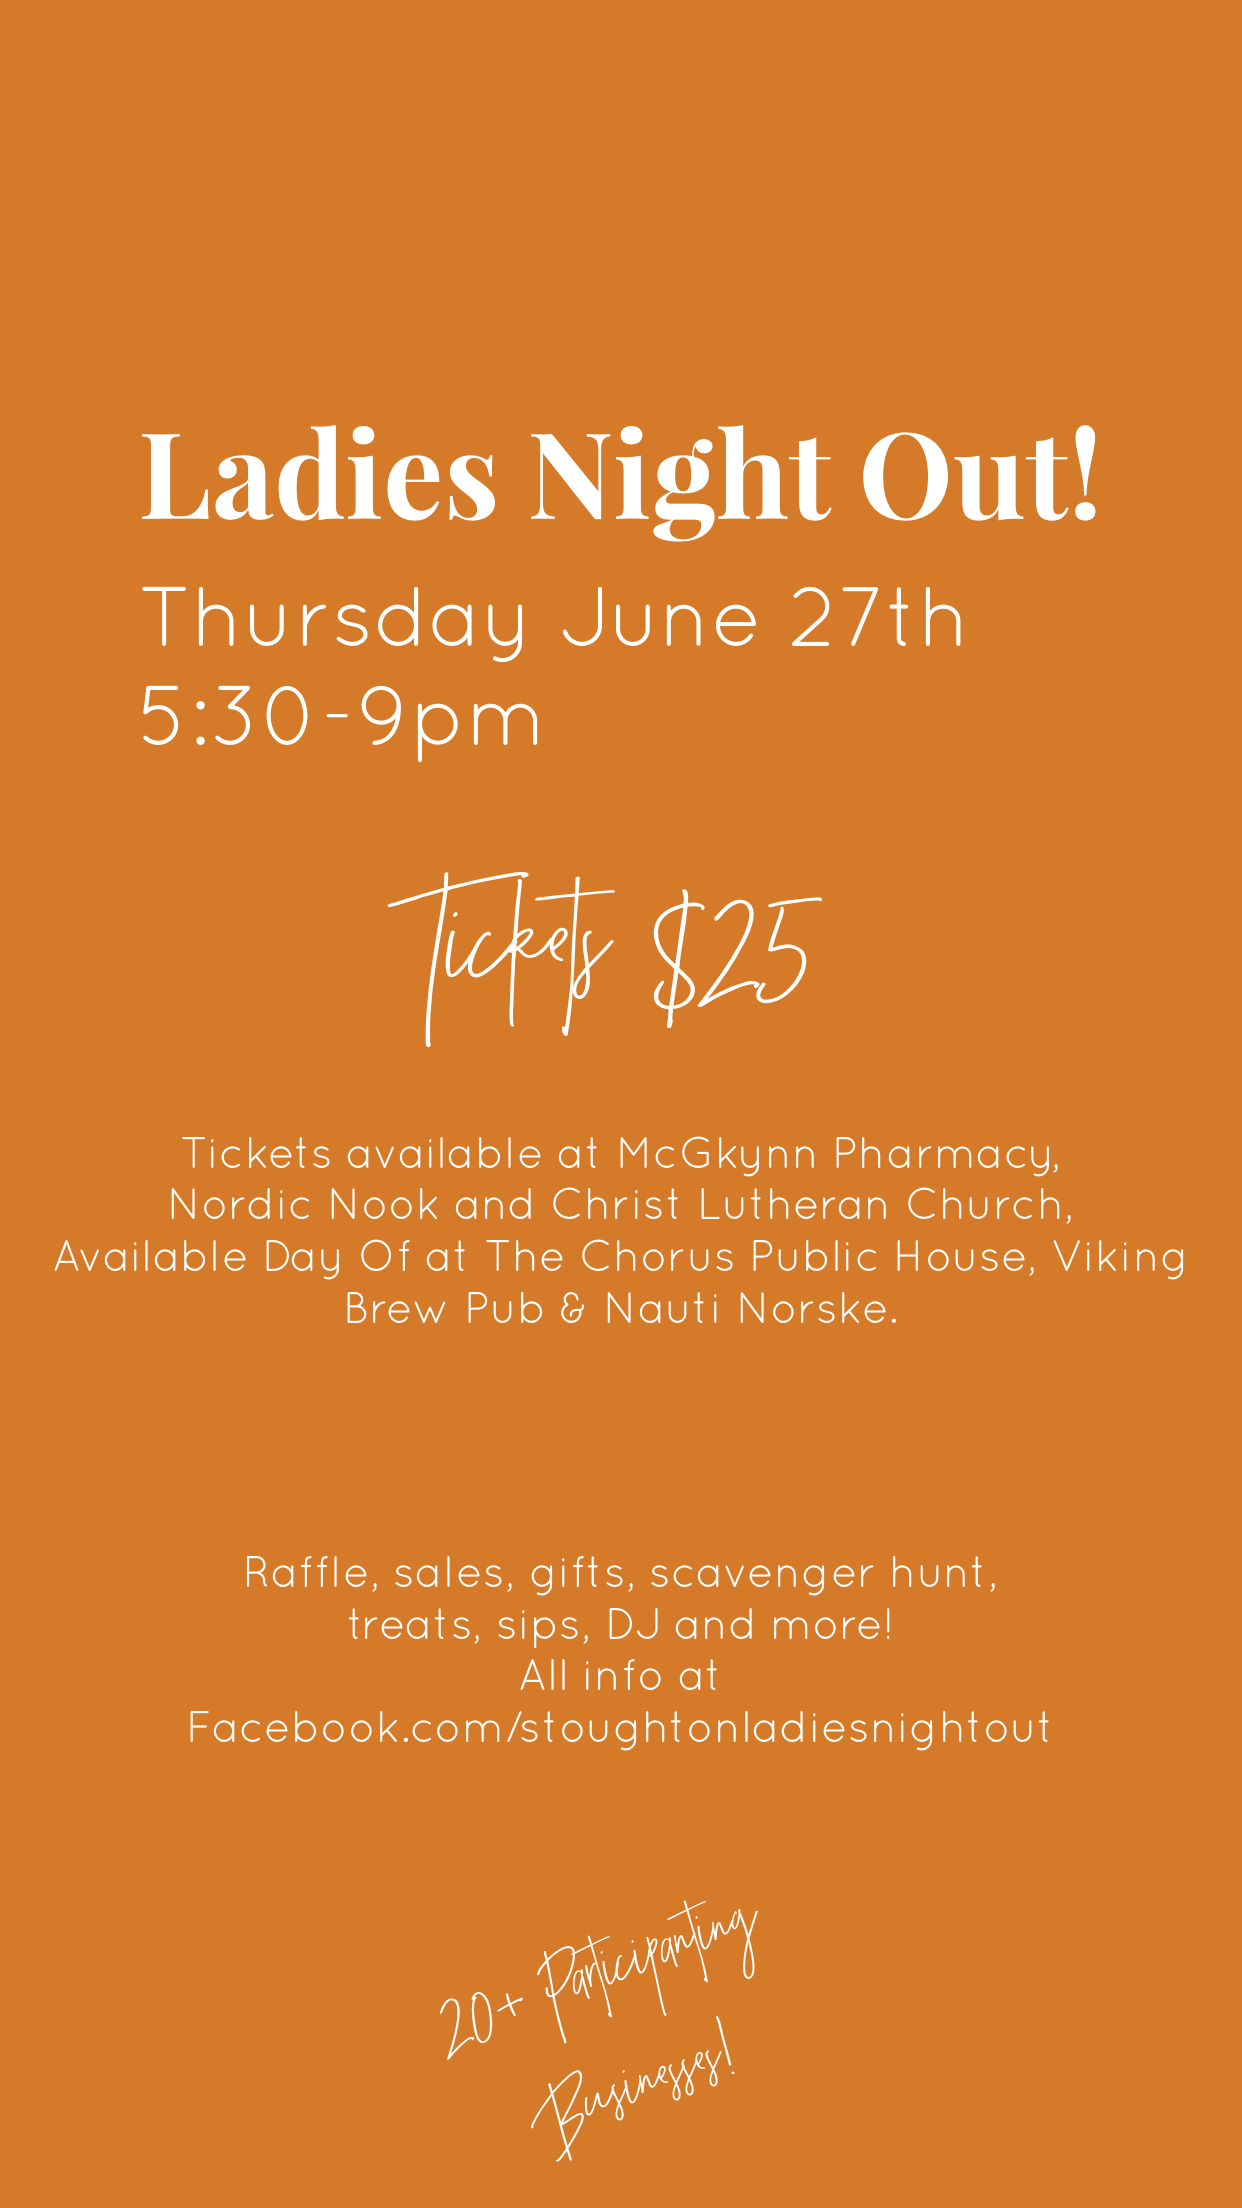 Find out ALL the Details at  Facebook.com/stoughtonladiesnightout